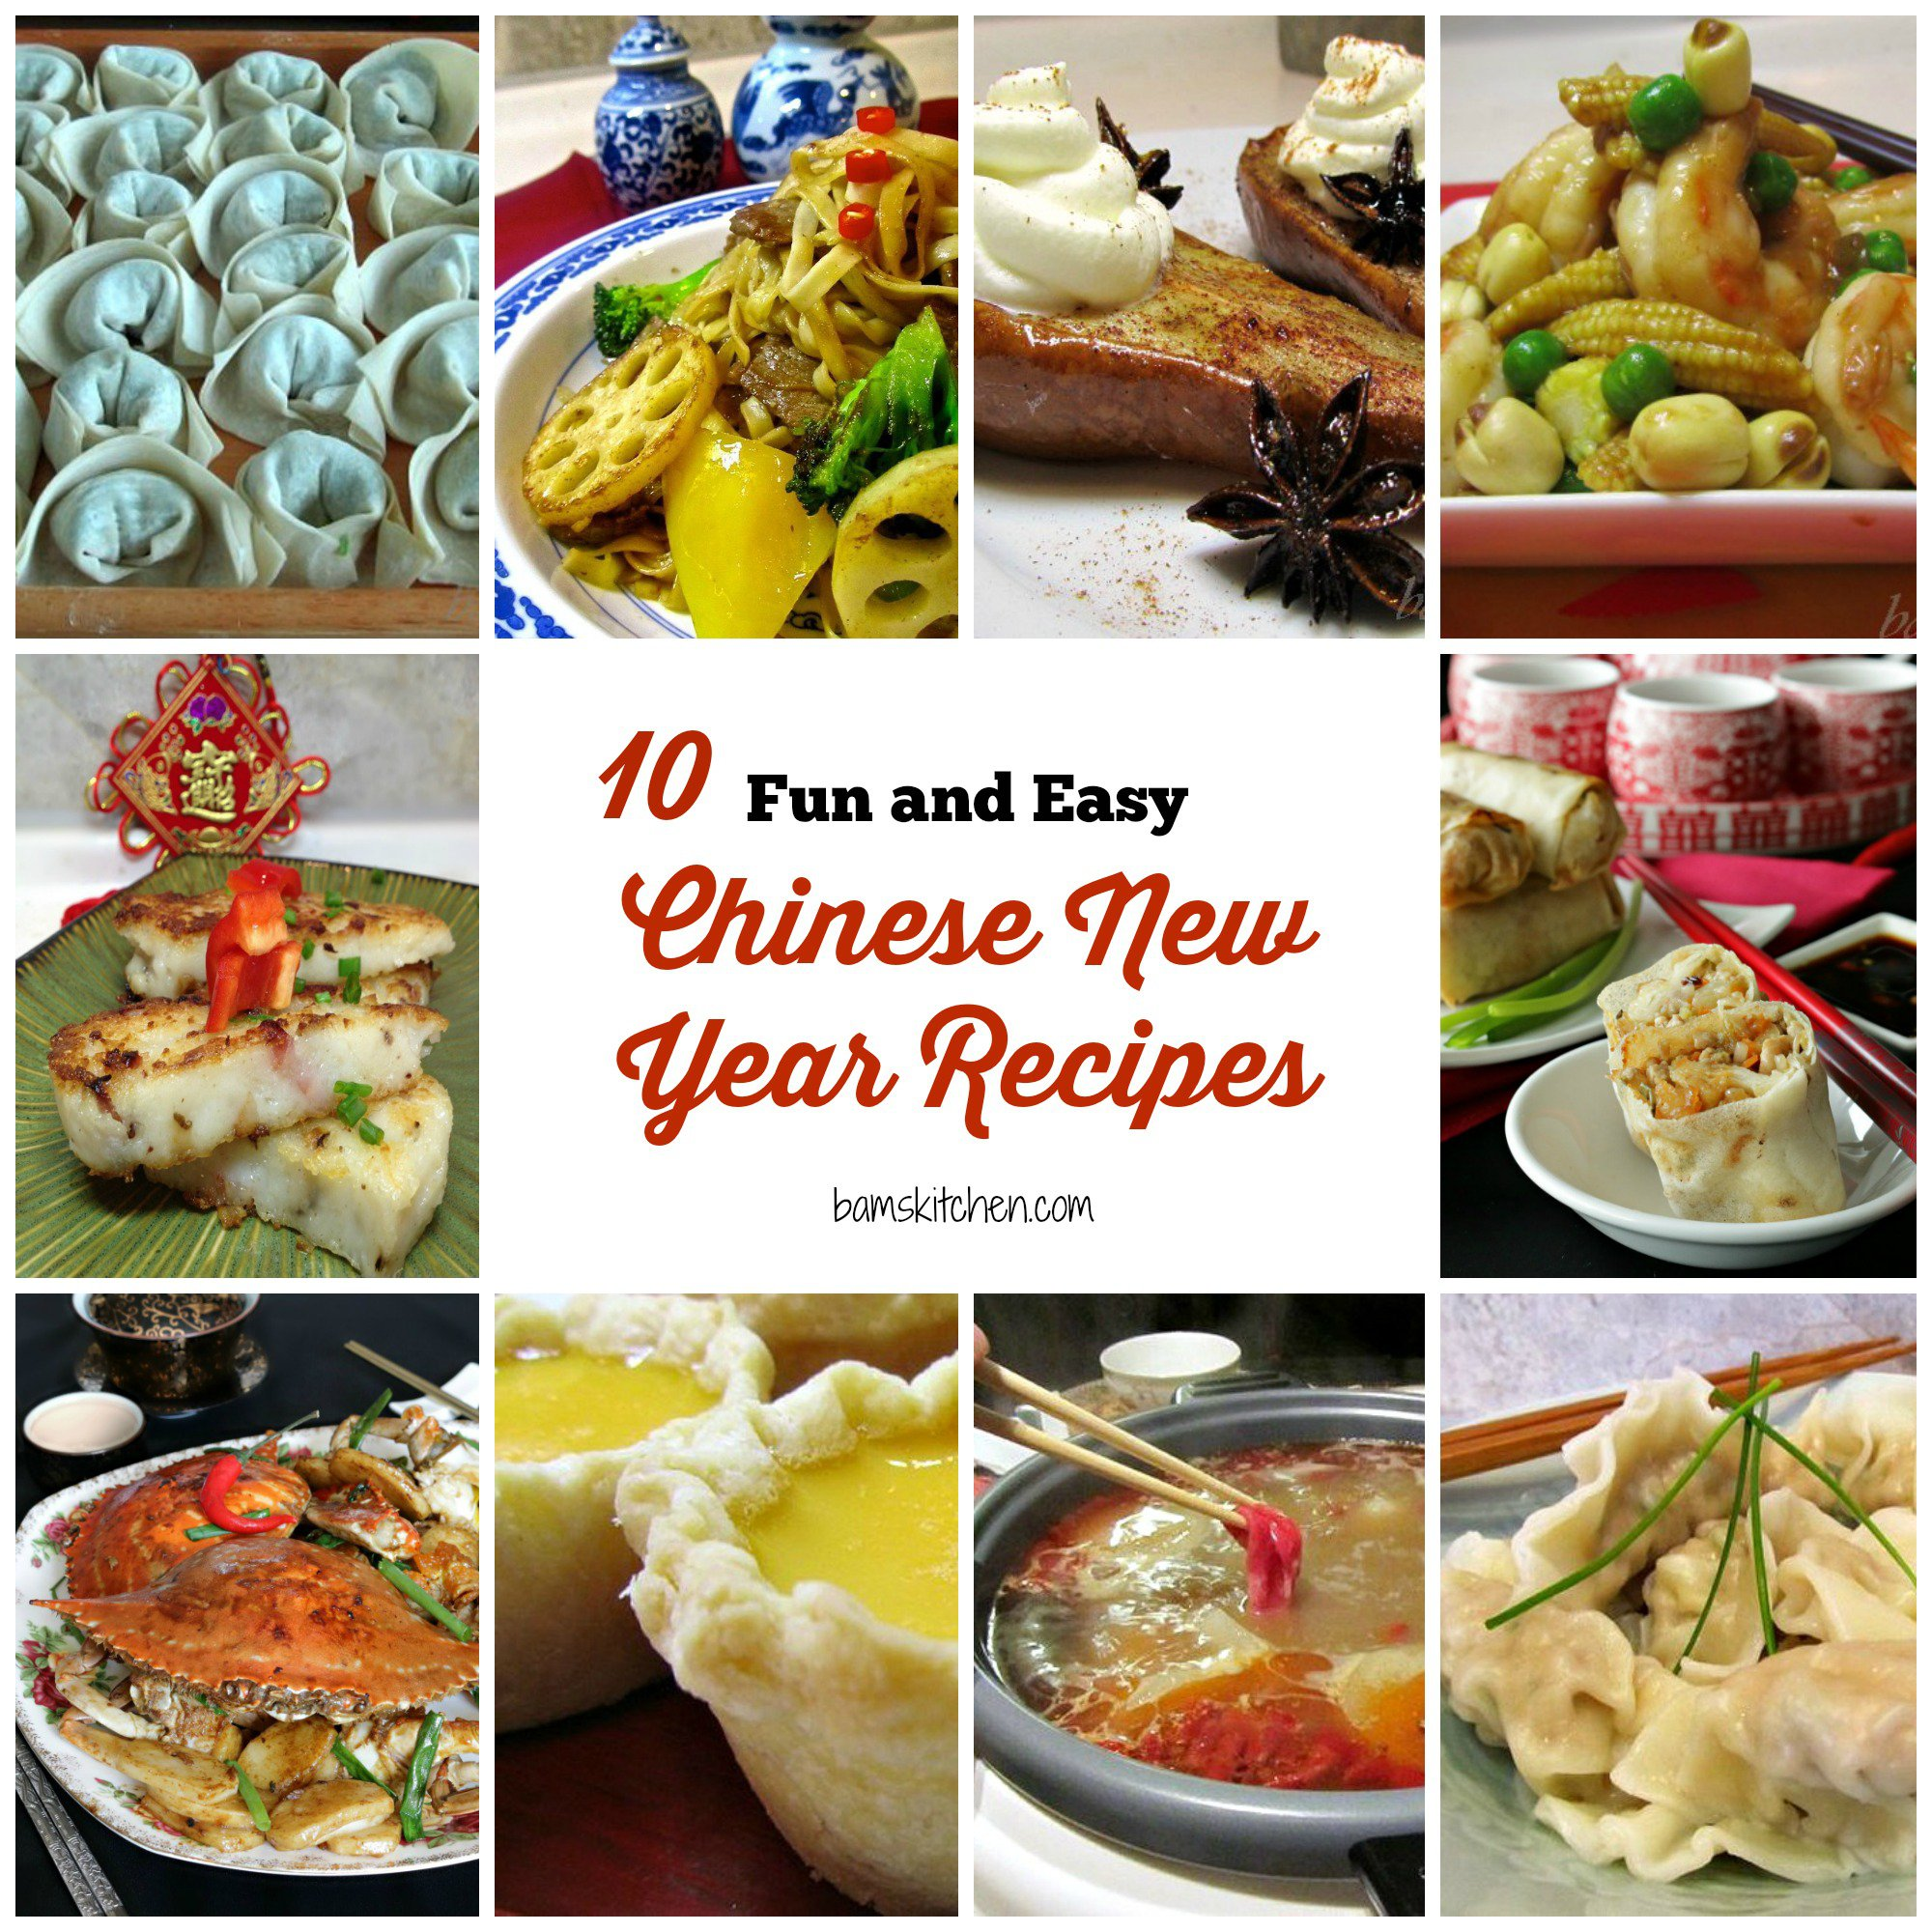 10 Fun and Easy Chinese New Year Recipes- Healthy World Cuisine